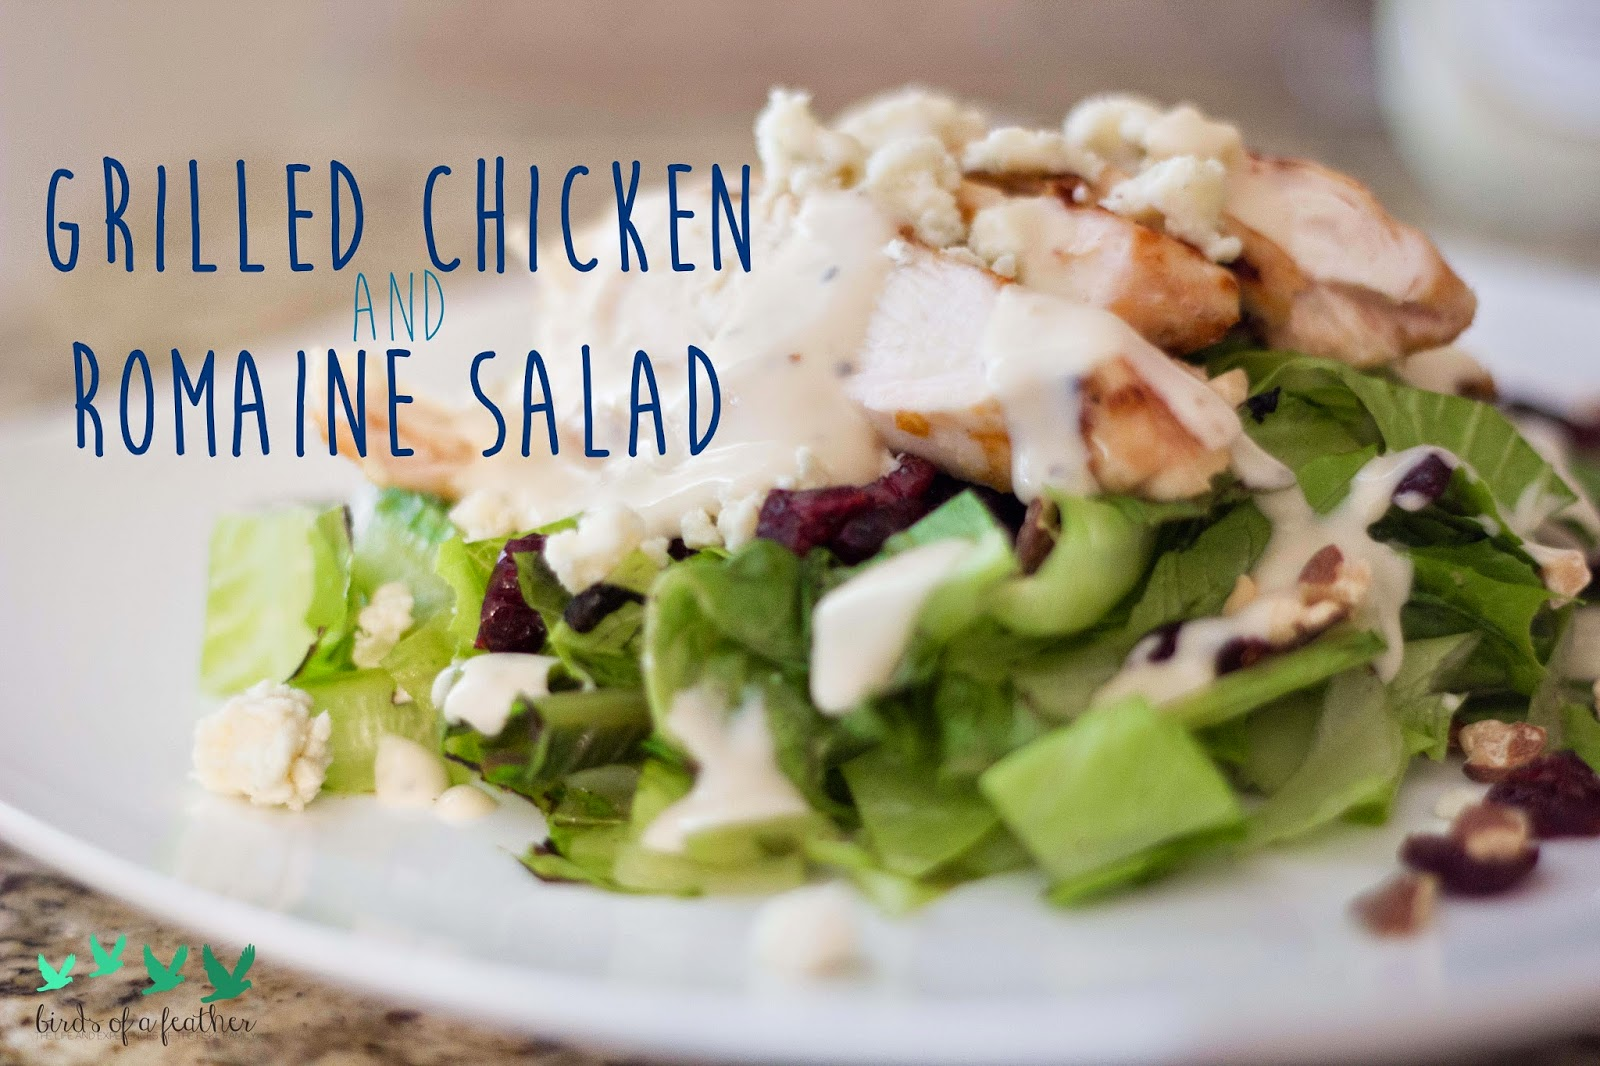 http://fiskefamily.blogspot.com/2014/08/grilled-chicken-and-romaine-salad.html